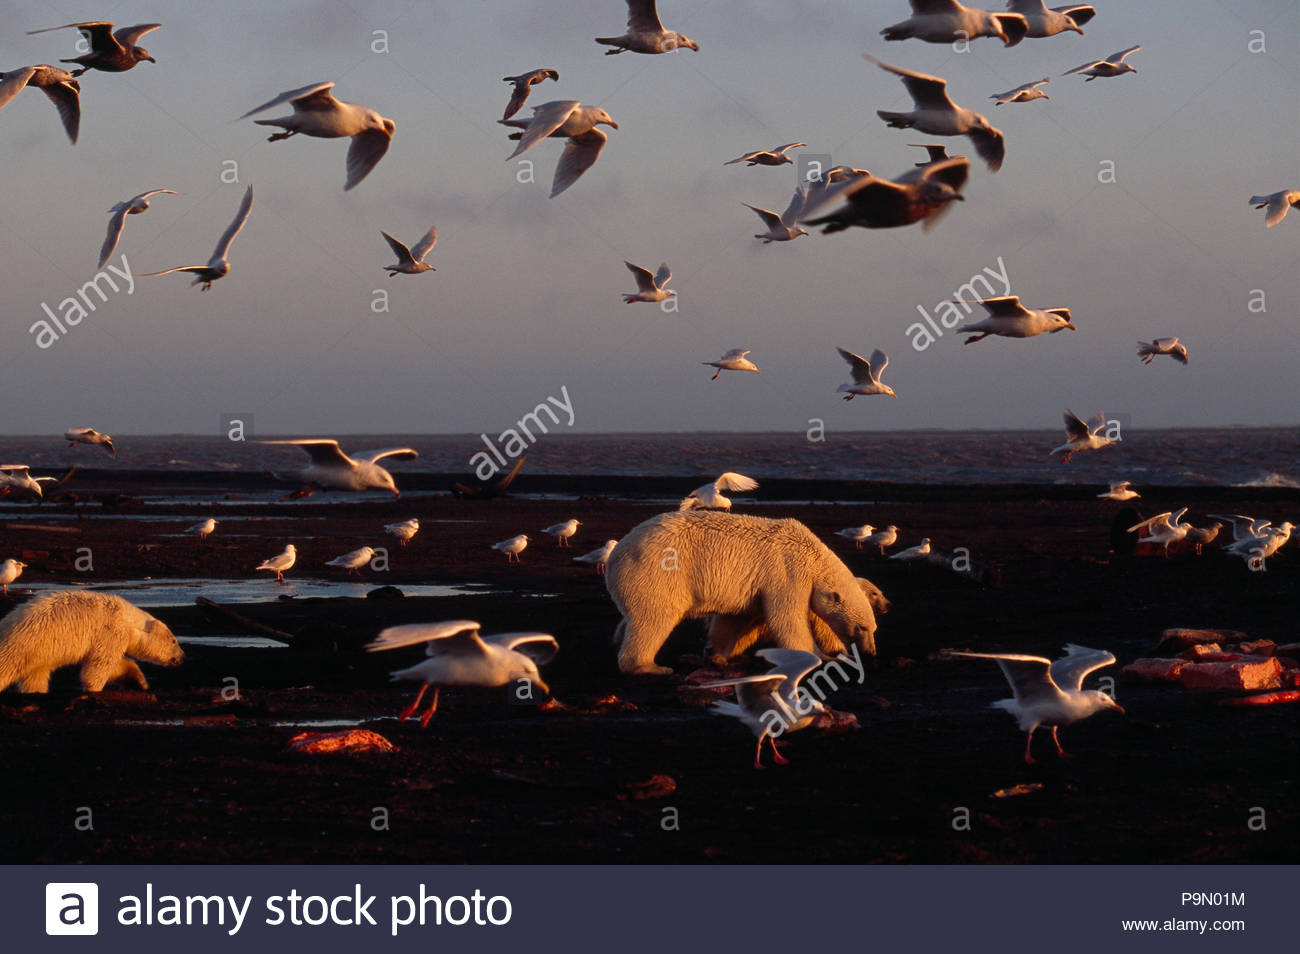 Polar bear and her cubs scavenge on a beach surrounded by gulls. - Stock Image